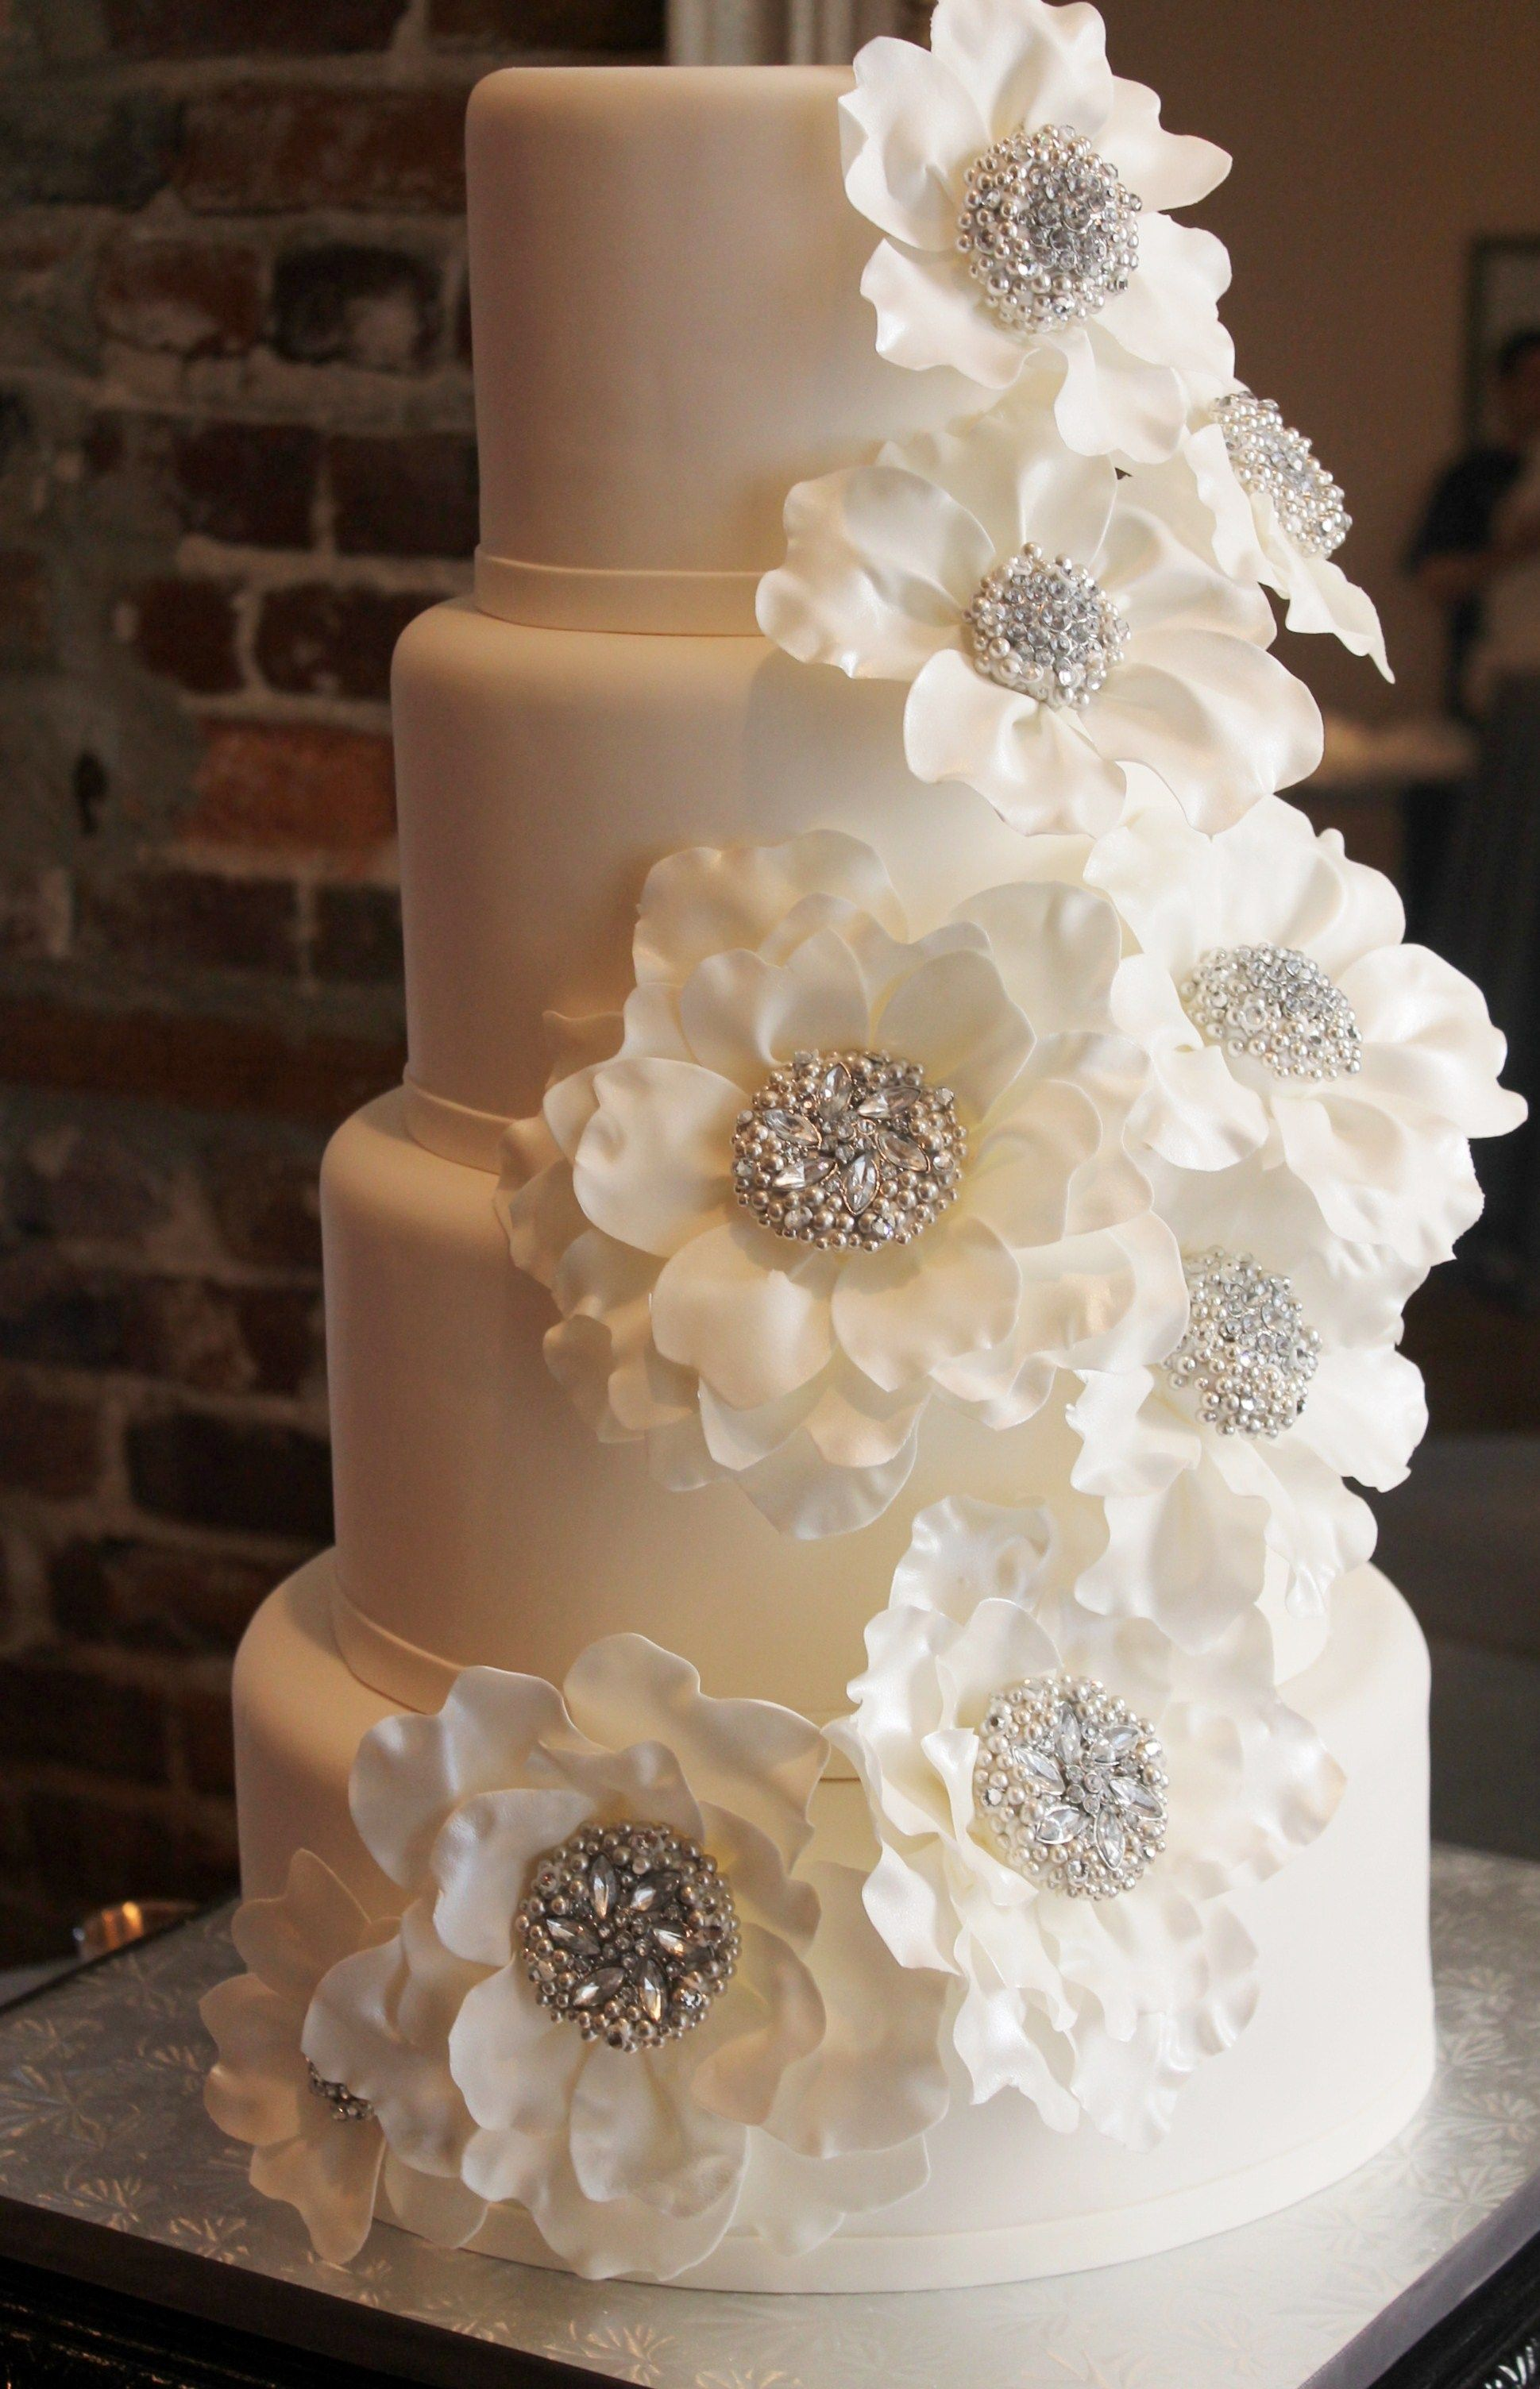 Handmade Jeweled Flower Centers Create The Look Of Bride S Couture Wedding Dress Details